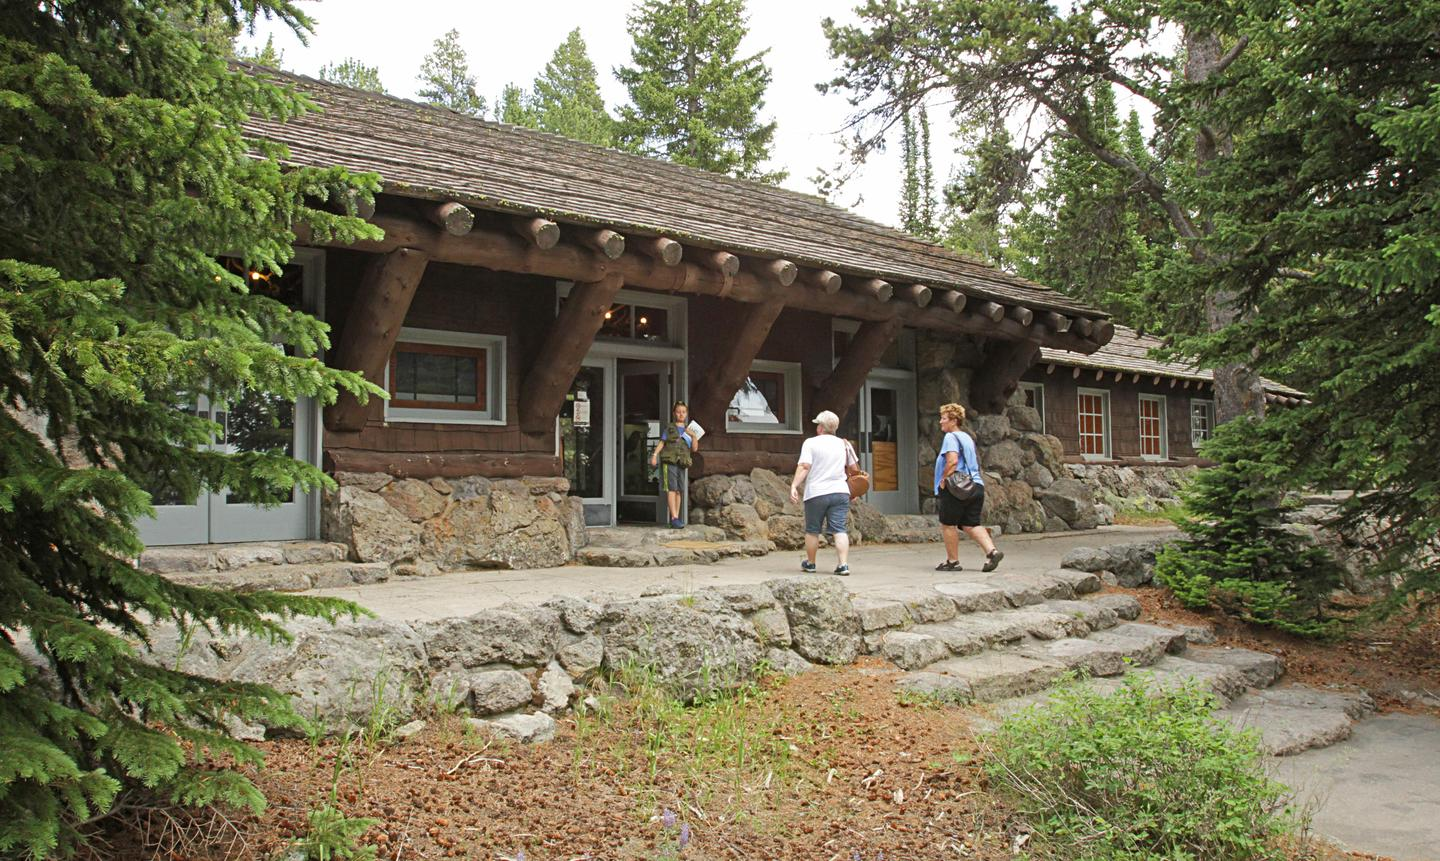 Fishing Bridge Visitor CenterThe Fishing Bridge Visitor Center and Trailside Museum is located in a beautiful grove of coniferous trees.